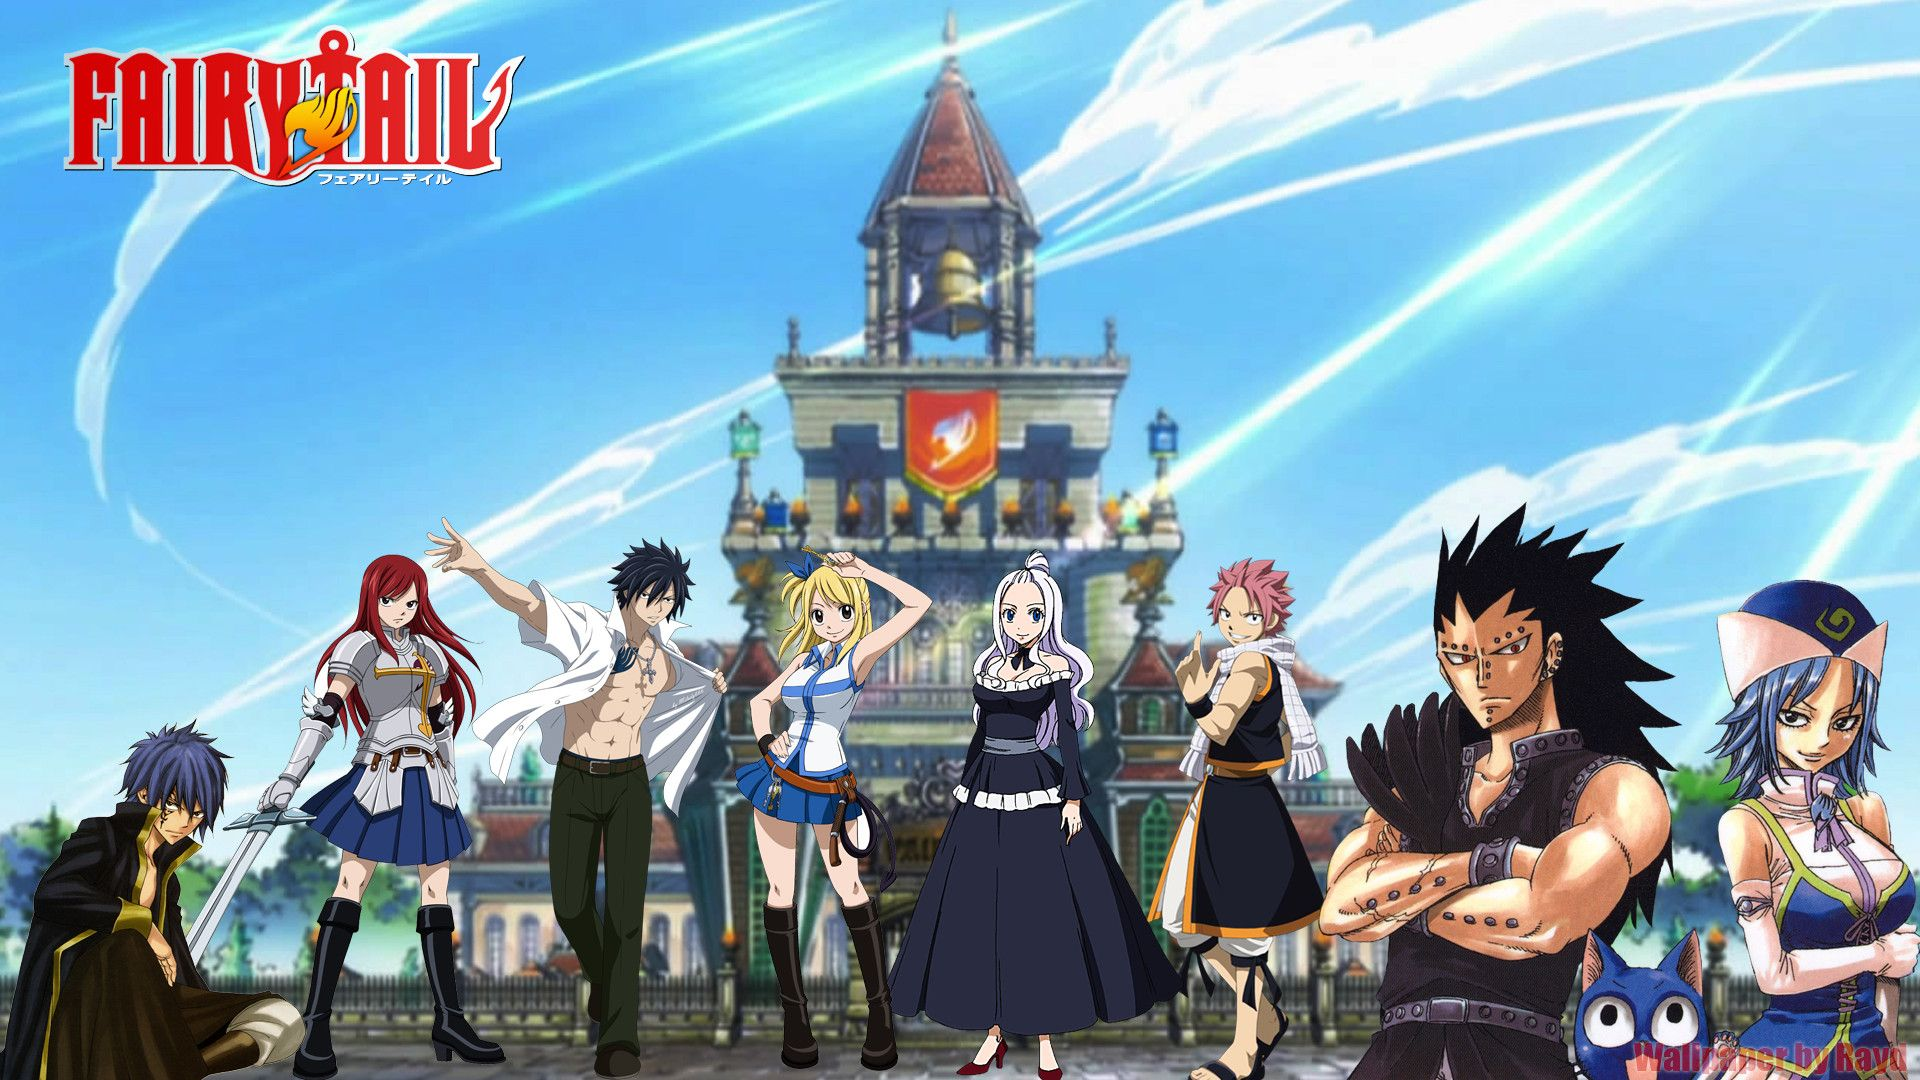 Fairy Tail 2015 Wallpapers HD - Wallpaper Cave